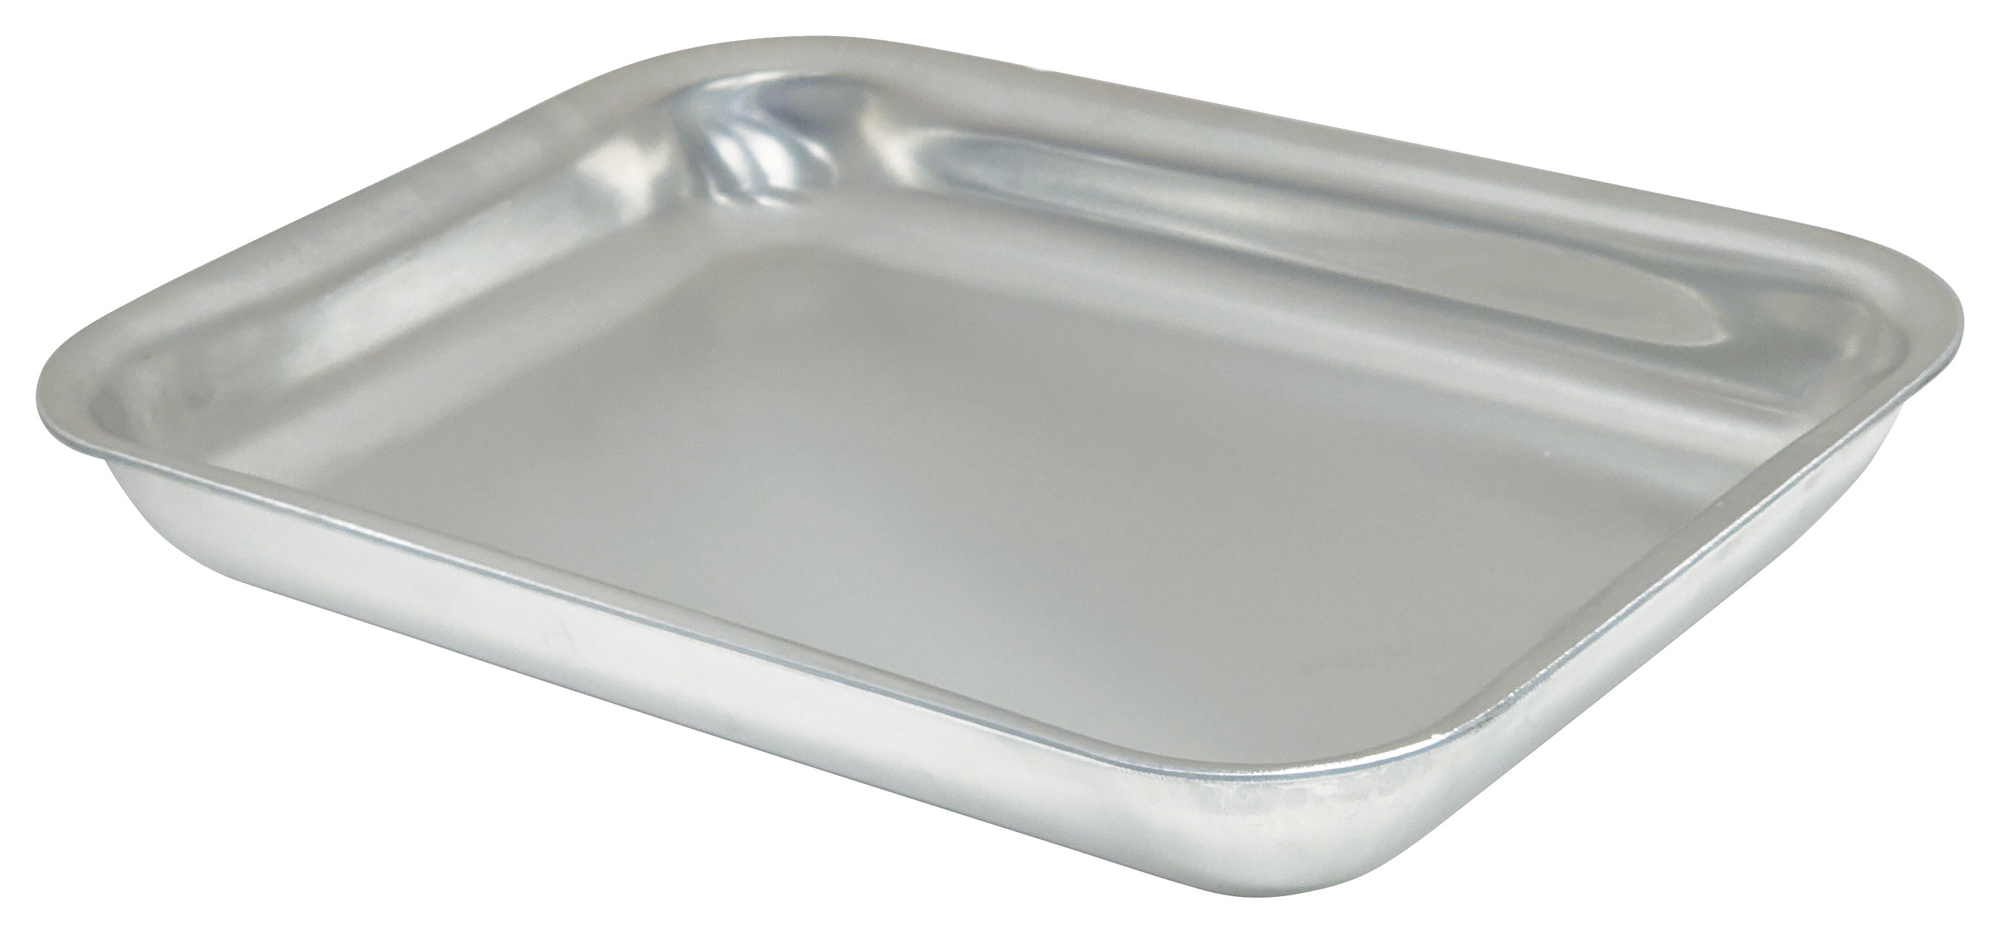 Winco ACVP-0608 serving tray